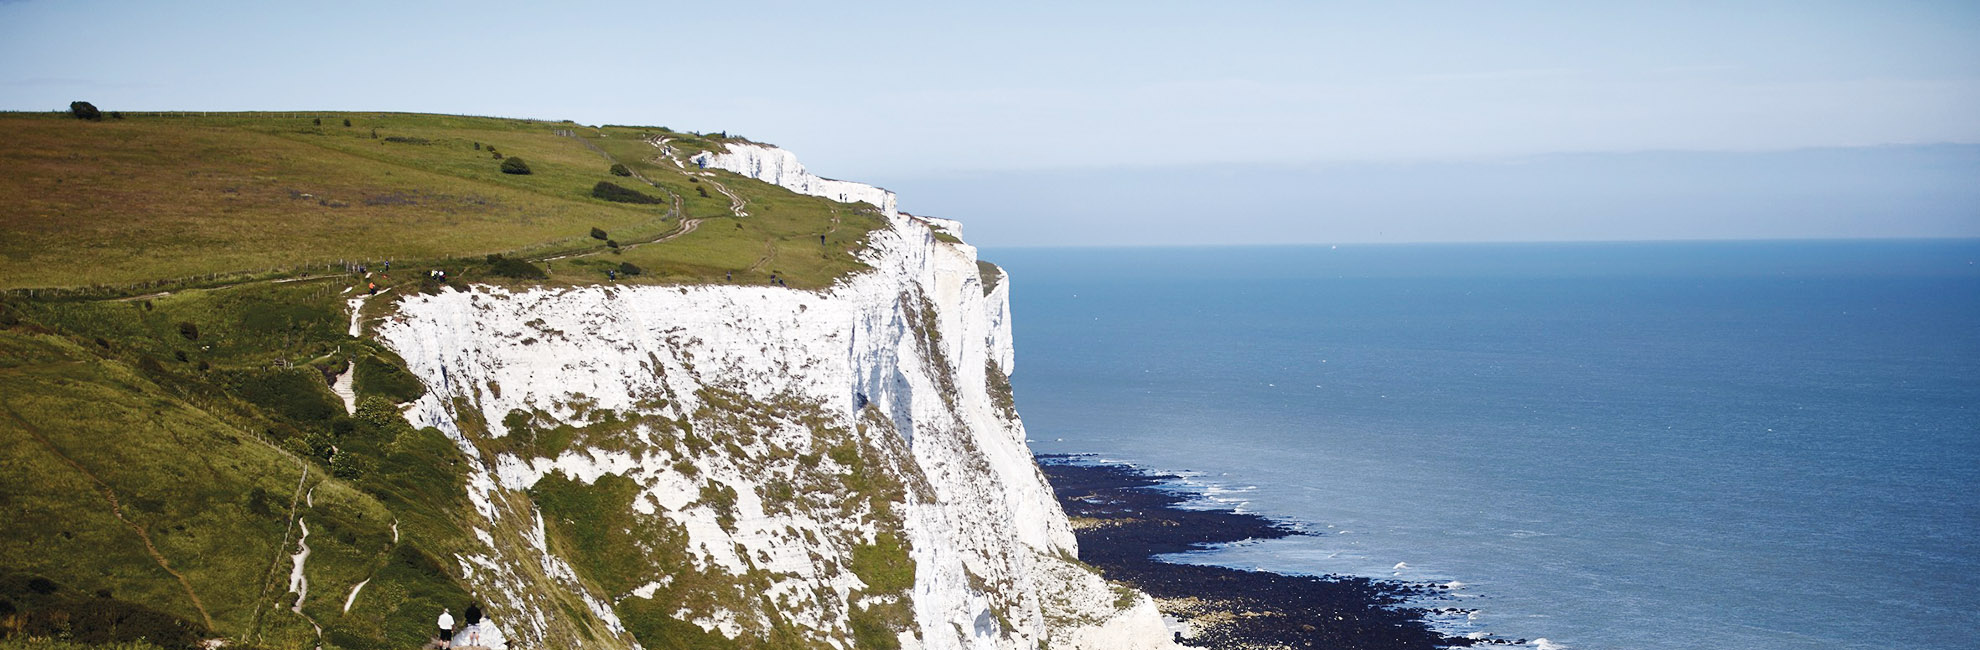 Looking over The Channel from the White Cliffs of Dover